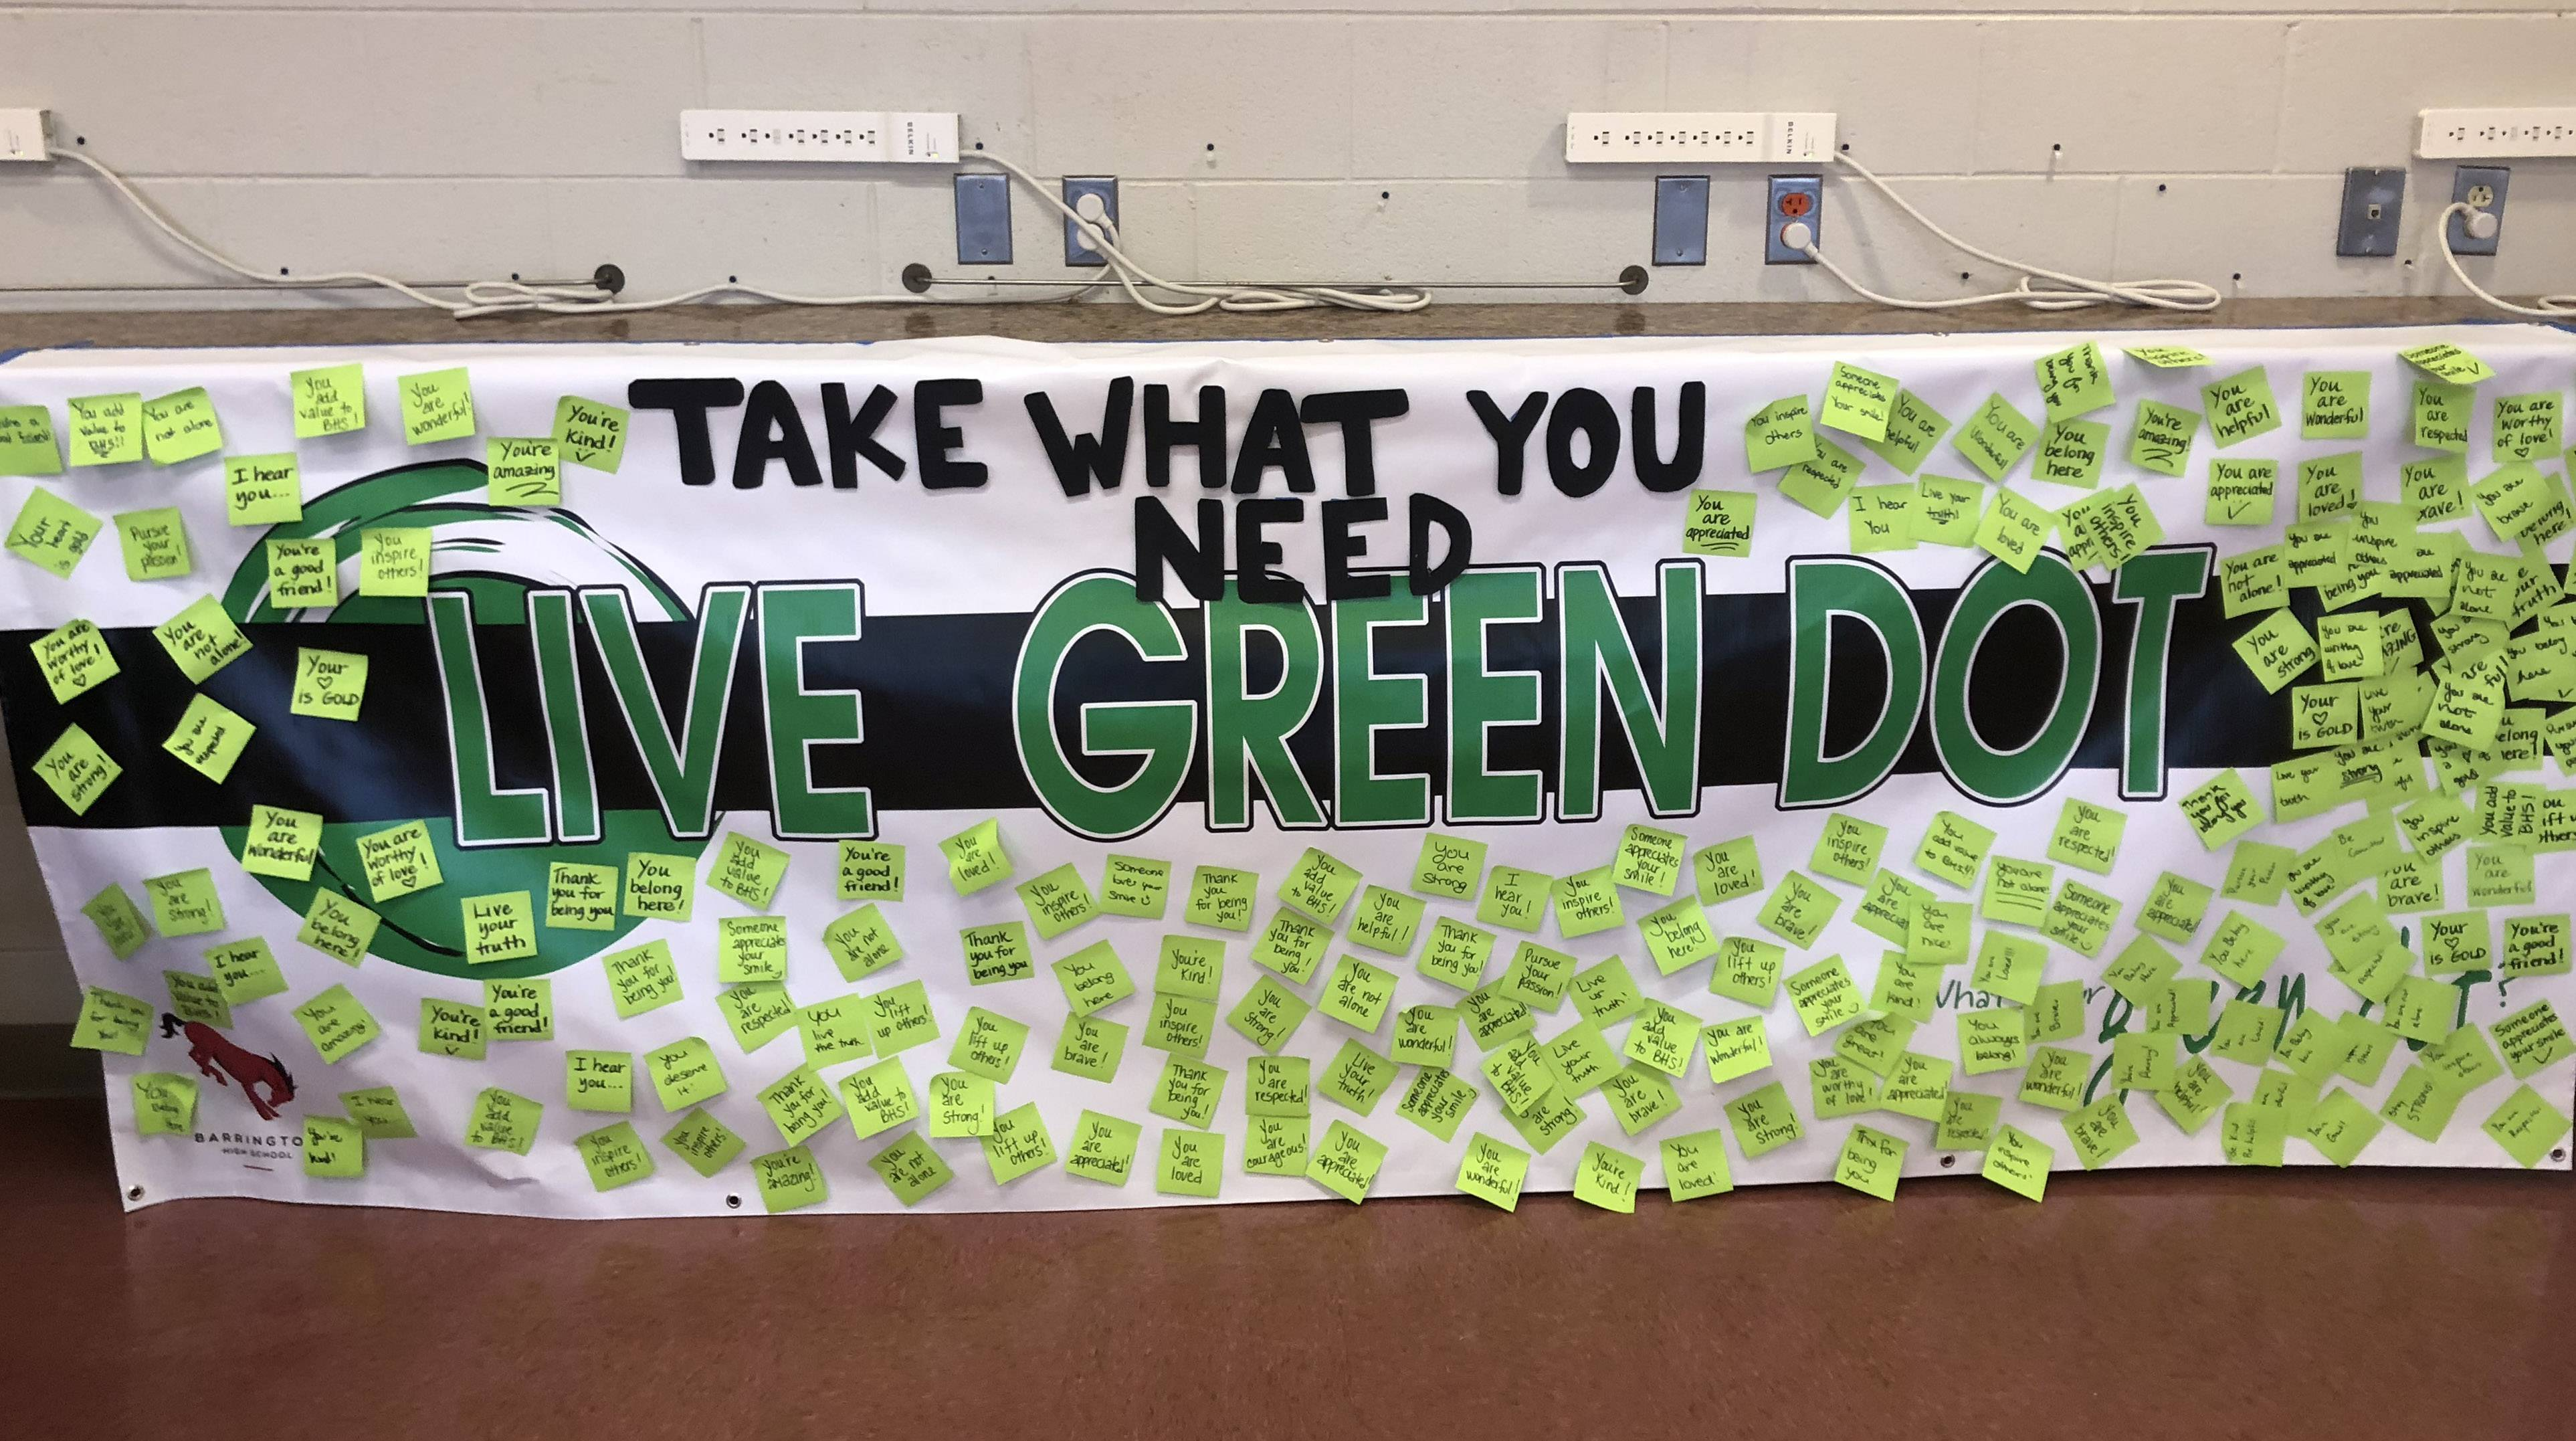 During the May 2018 Mental Health Awareness Month, Barrington High School featured the Green Dot banner with positive messaging in the student cafeteria.